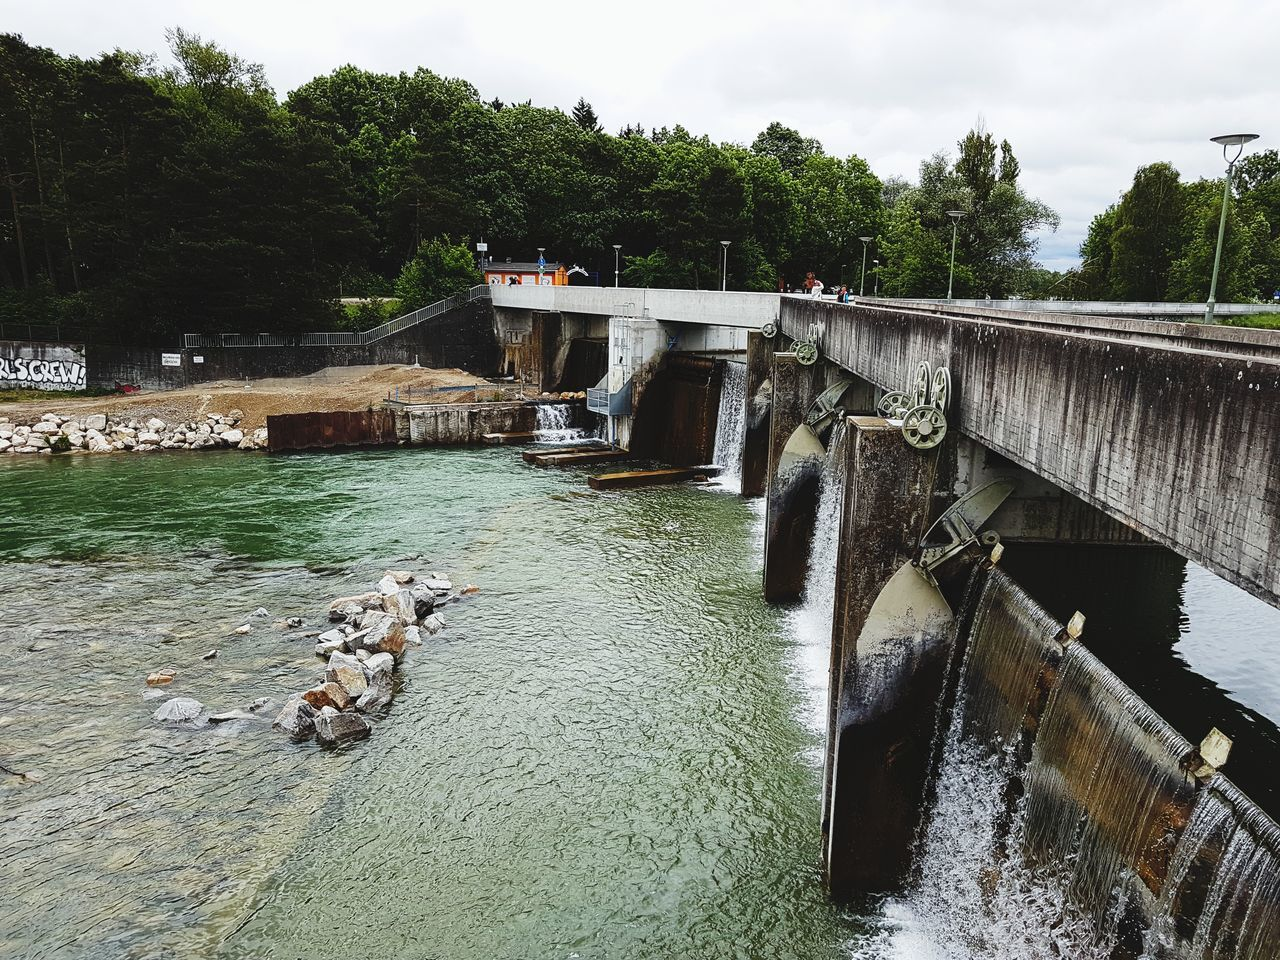 water, bridge - man made structure, river, day, tree, architecture, dam, hydroelectric power, nature, outdoors, built structure, animal themes, mammal, domestic animals, no people, motion, waterfront, sky, pets